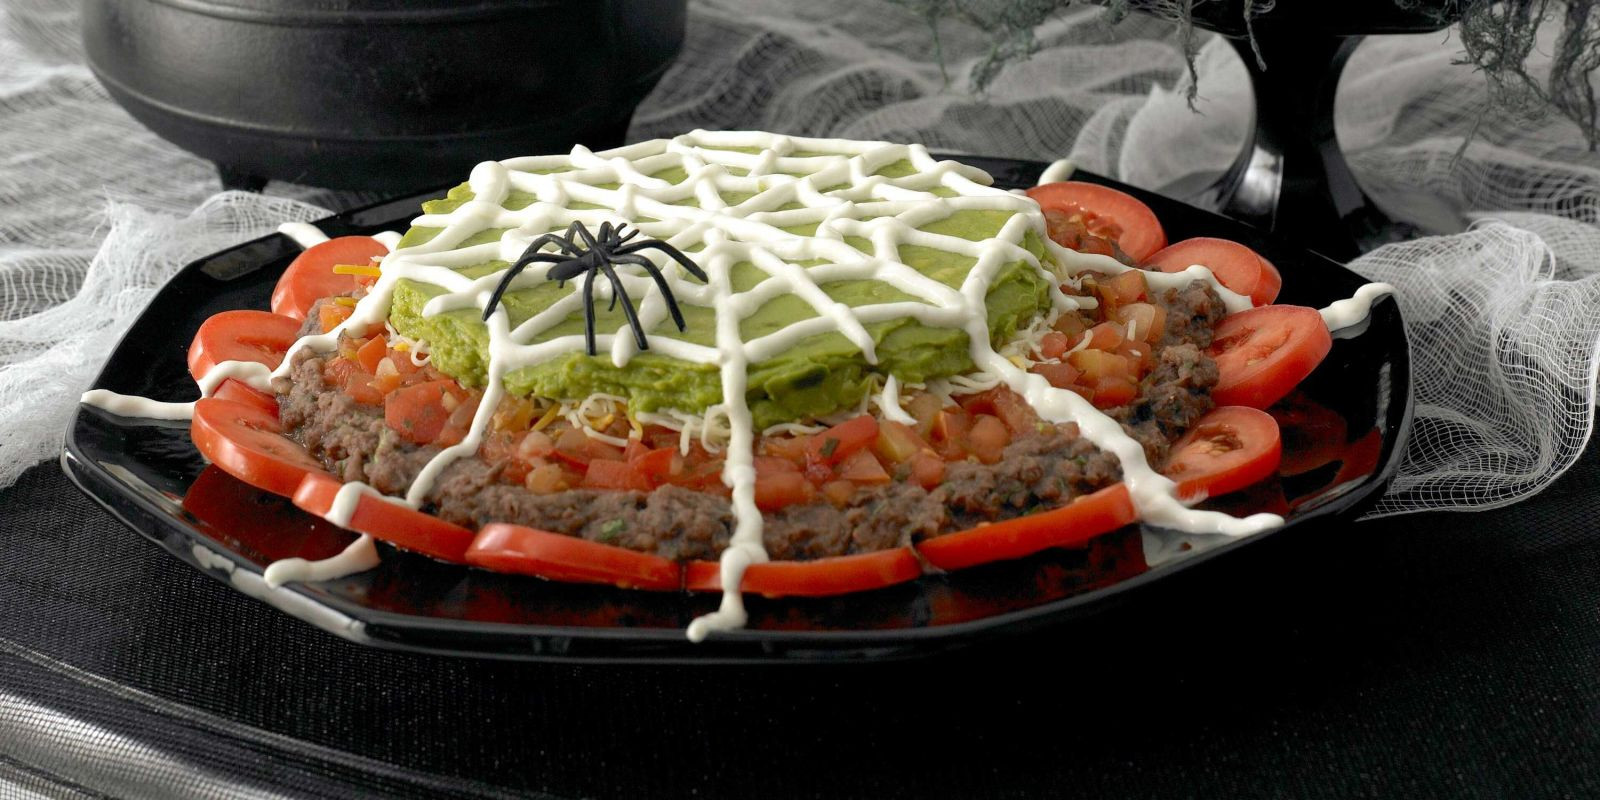 Halloween Dips And Spreads  Spiderweb Nacho Spread Recipe for Halloween at Woman s Day